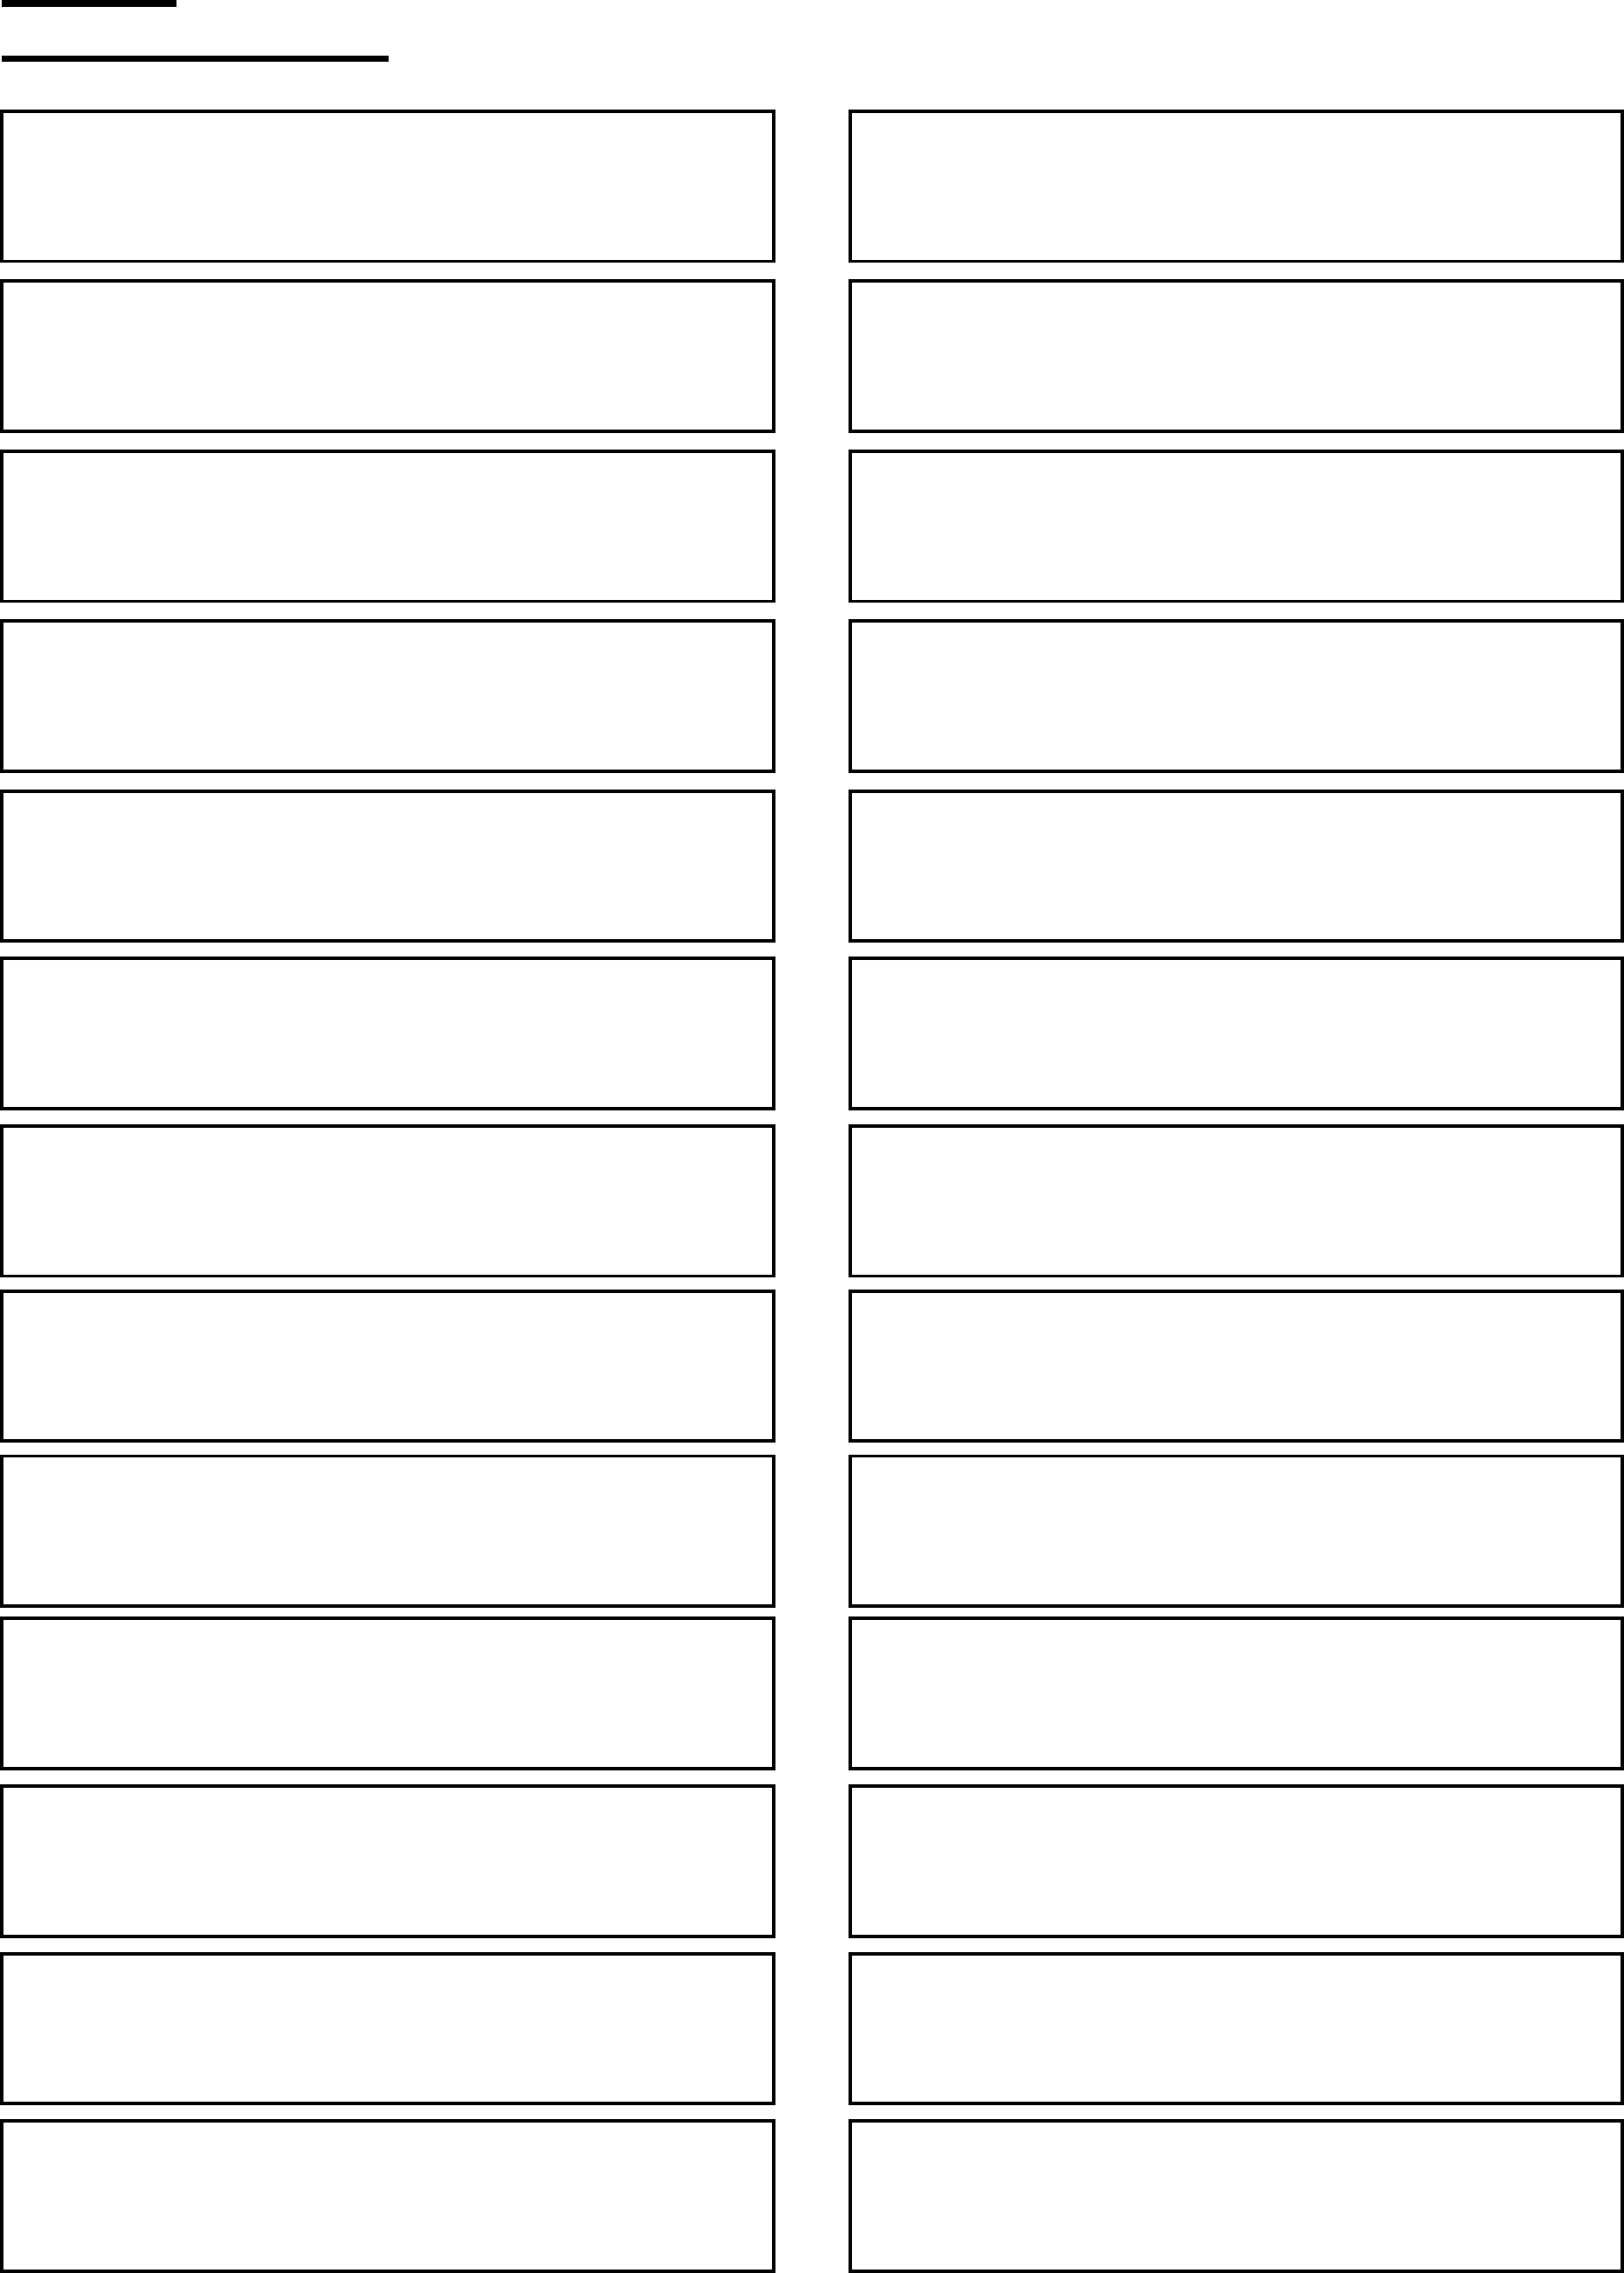 school bus seating chart template free download